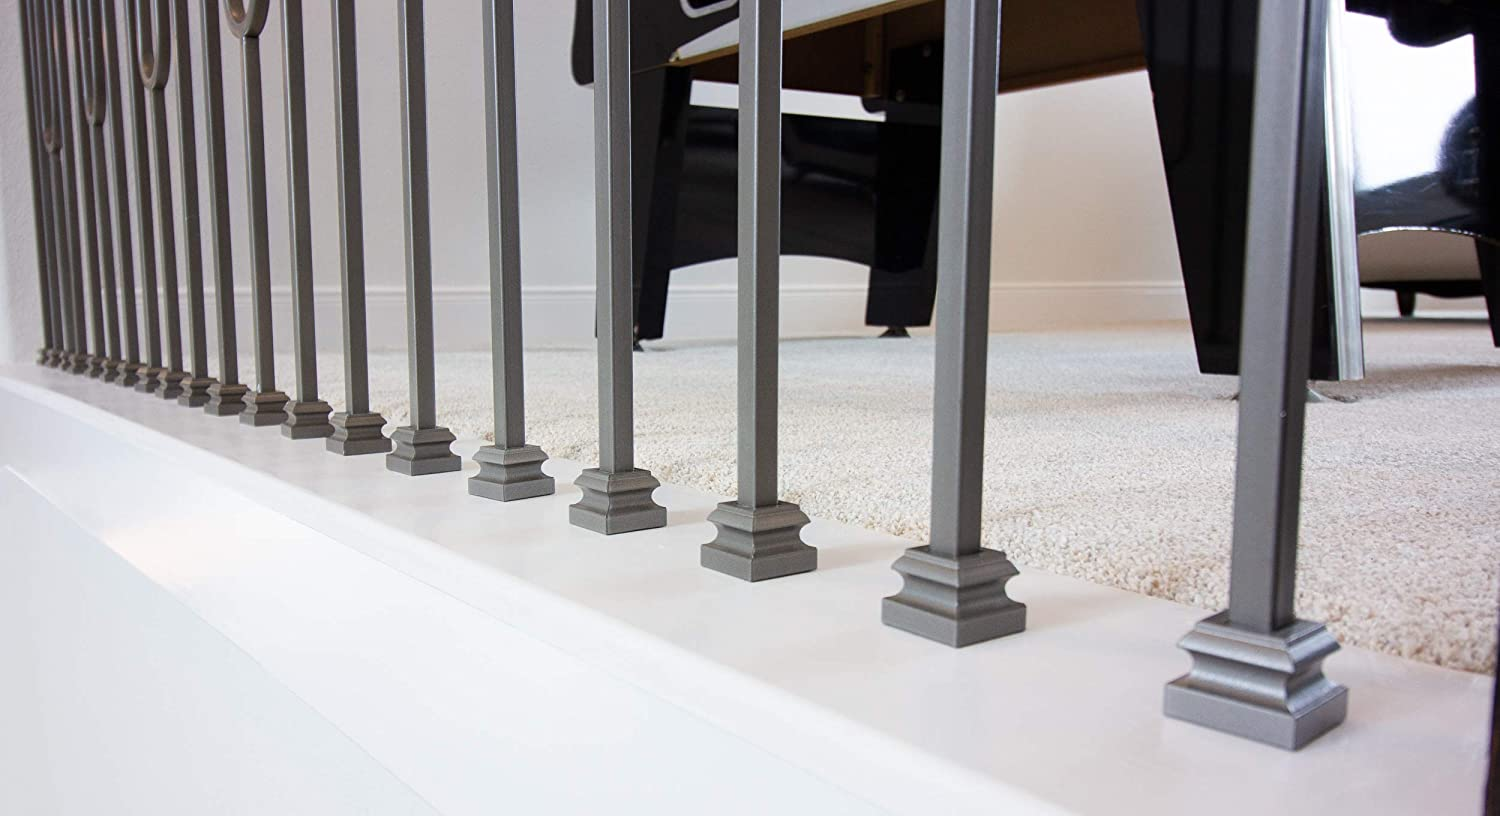 Box of 10 Ash Grey 16.3.19 1//2 Opening Flat Shoe Base Covers for Iron Balusters and Stair Remodeling